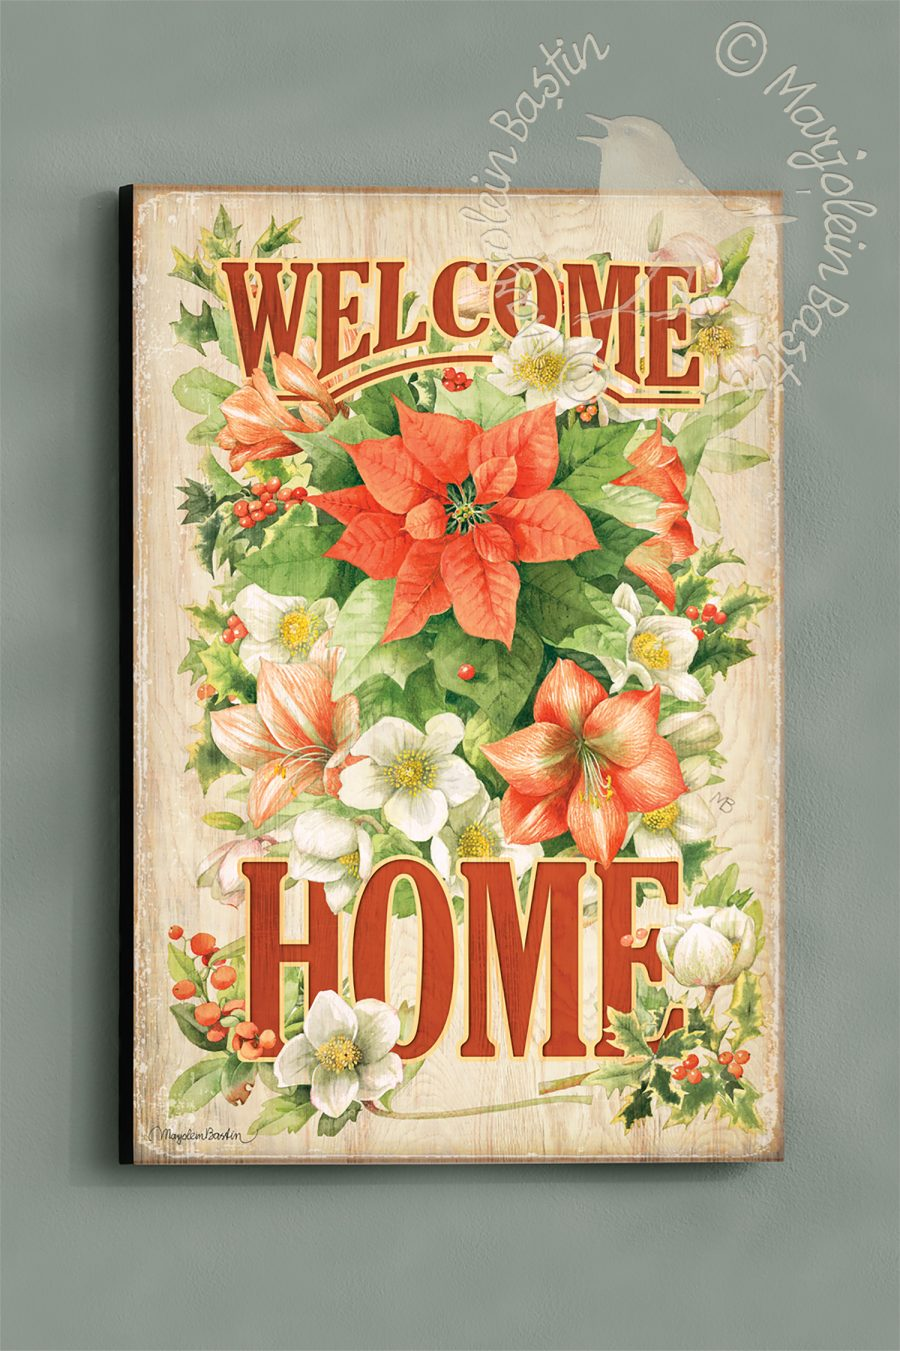 "Welcome Home - 18'' x 12"" Wood Sign"